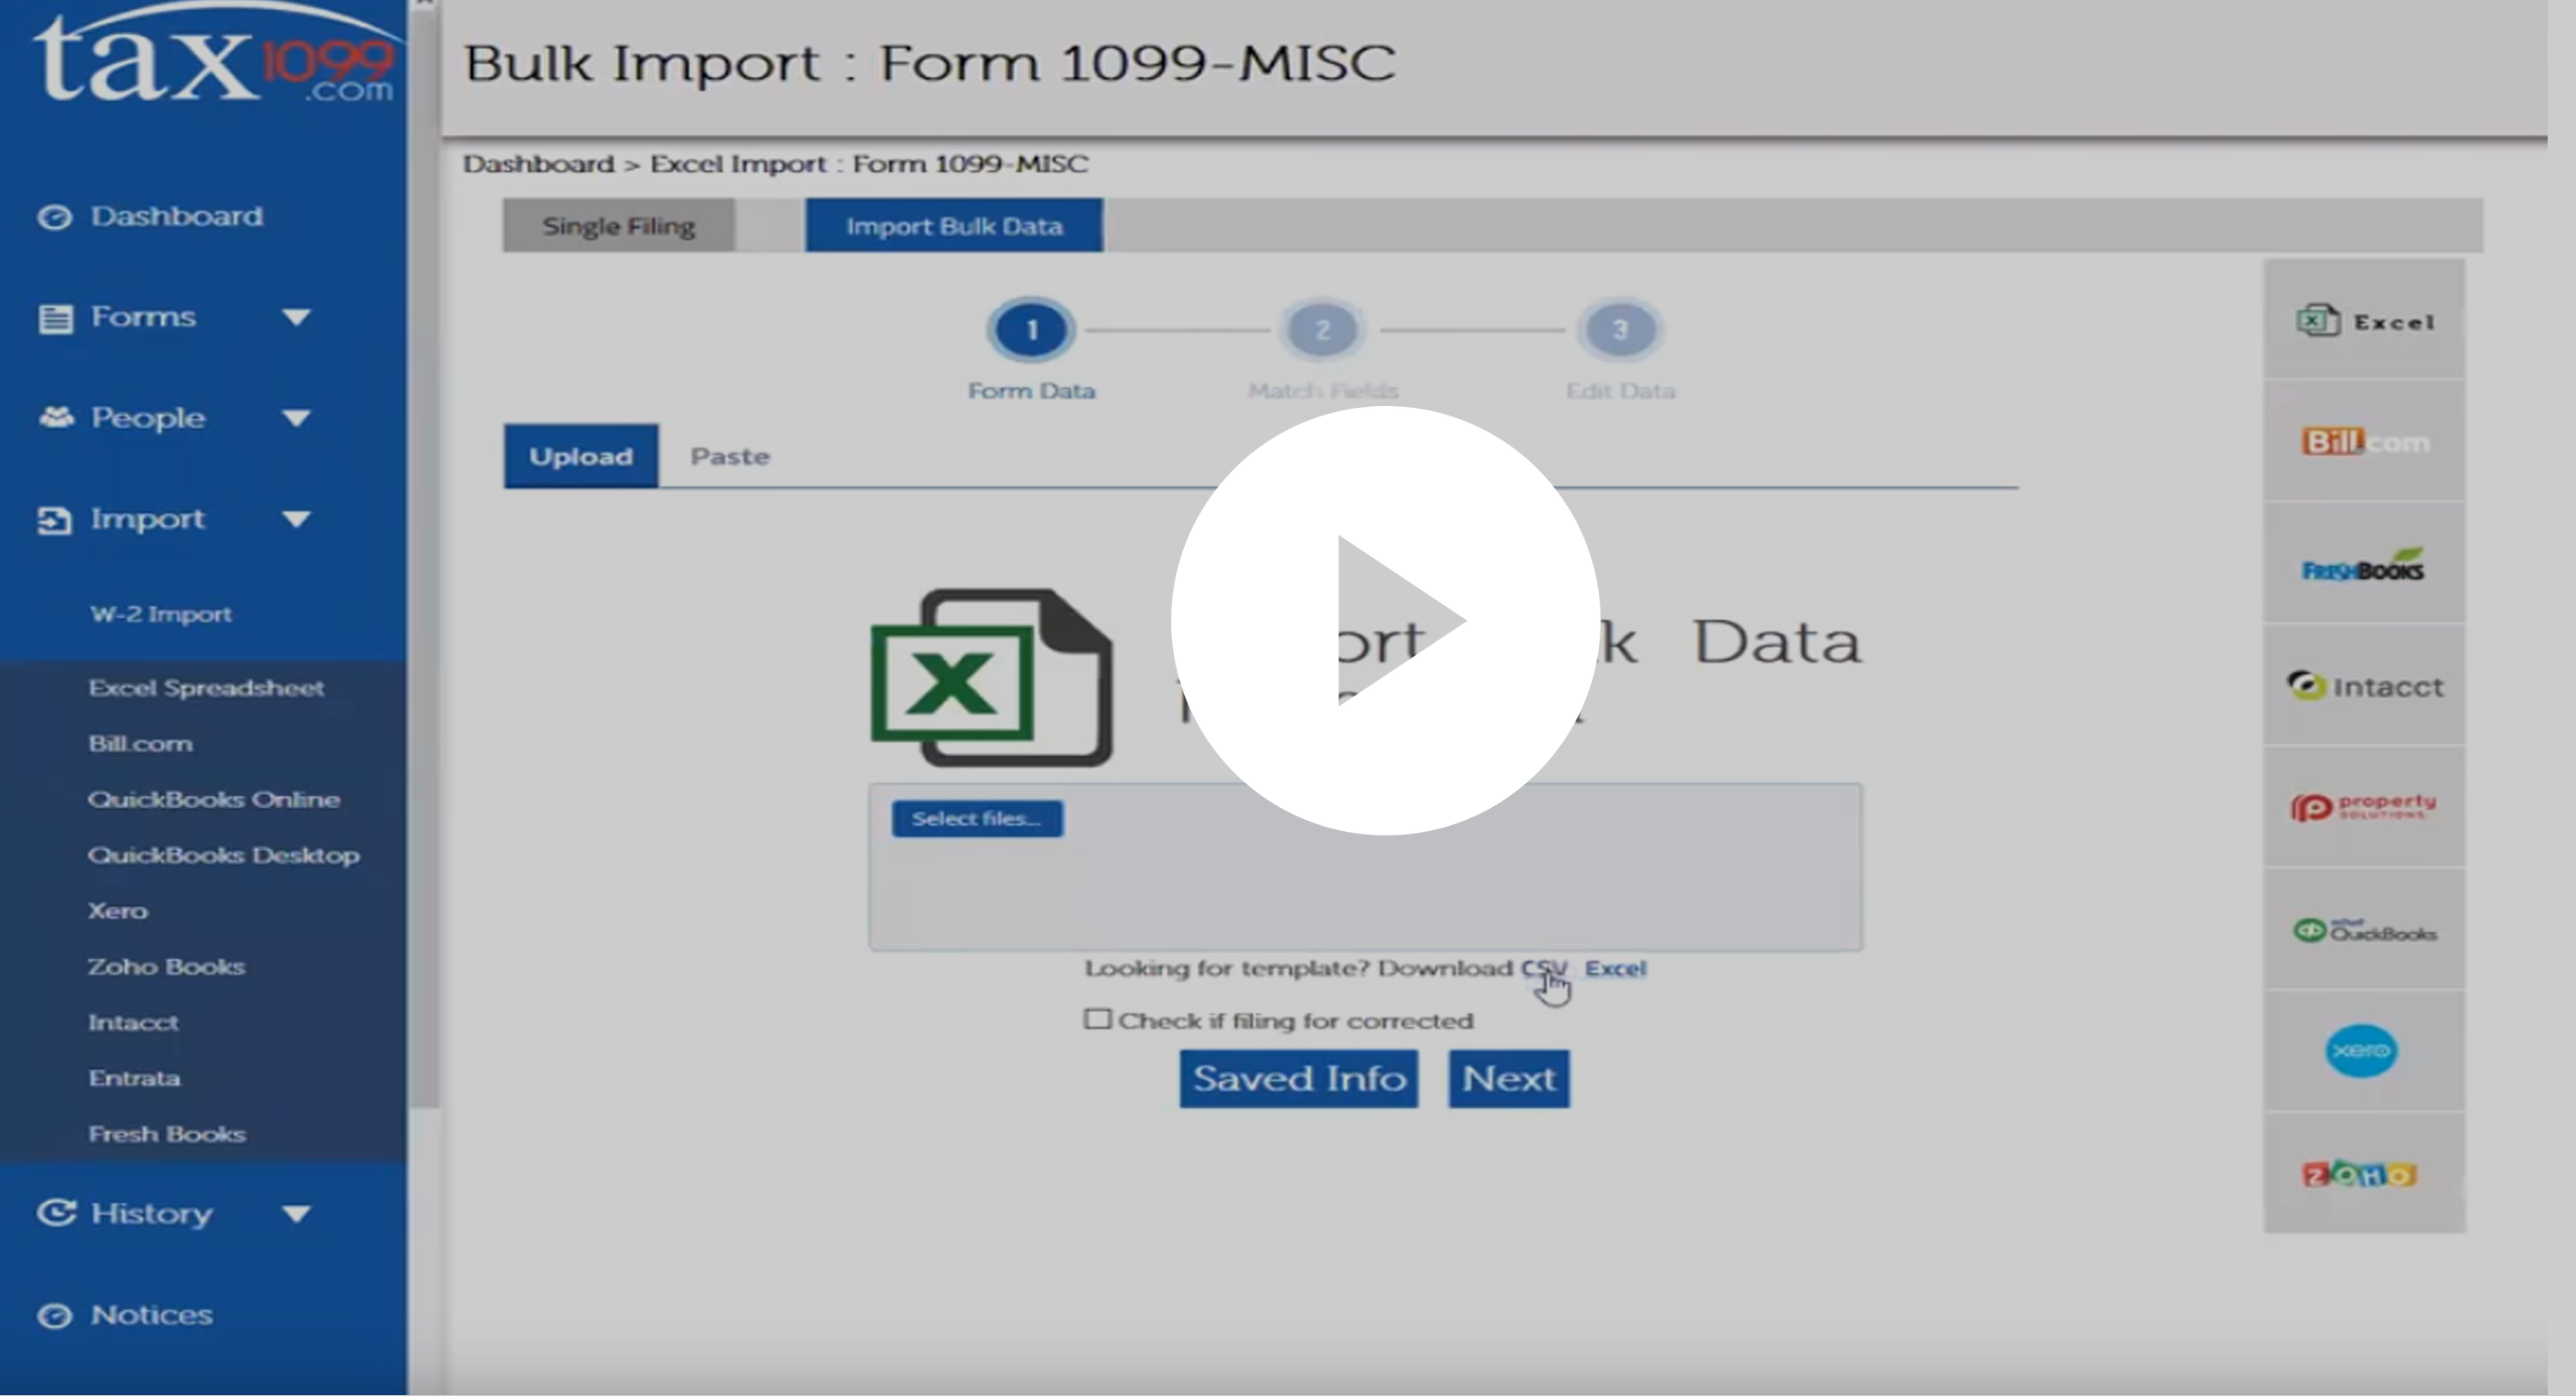 Bulk Import - Form 1099 - Demo